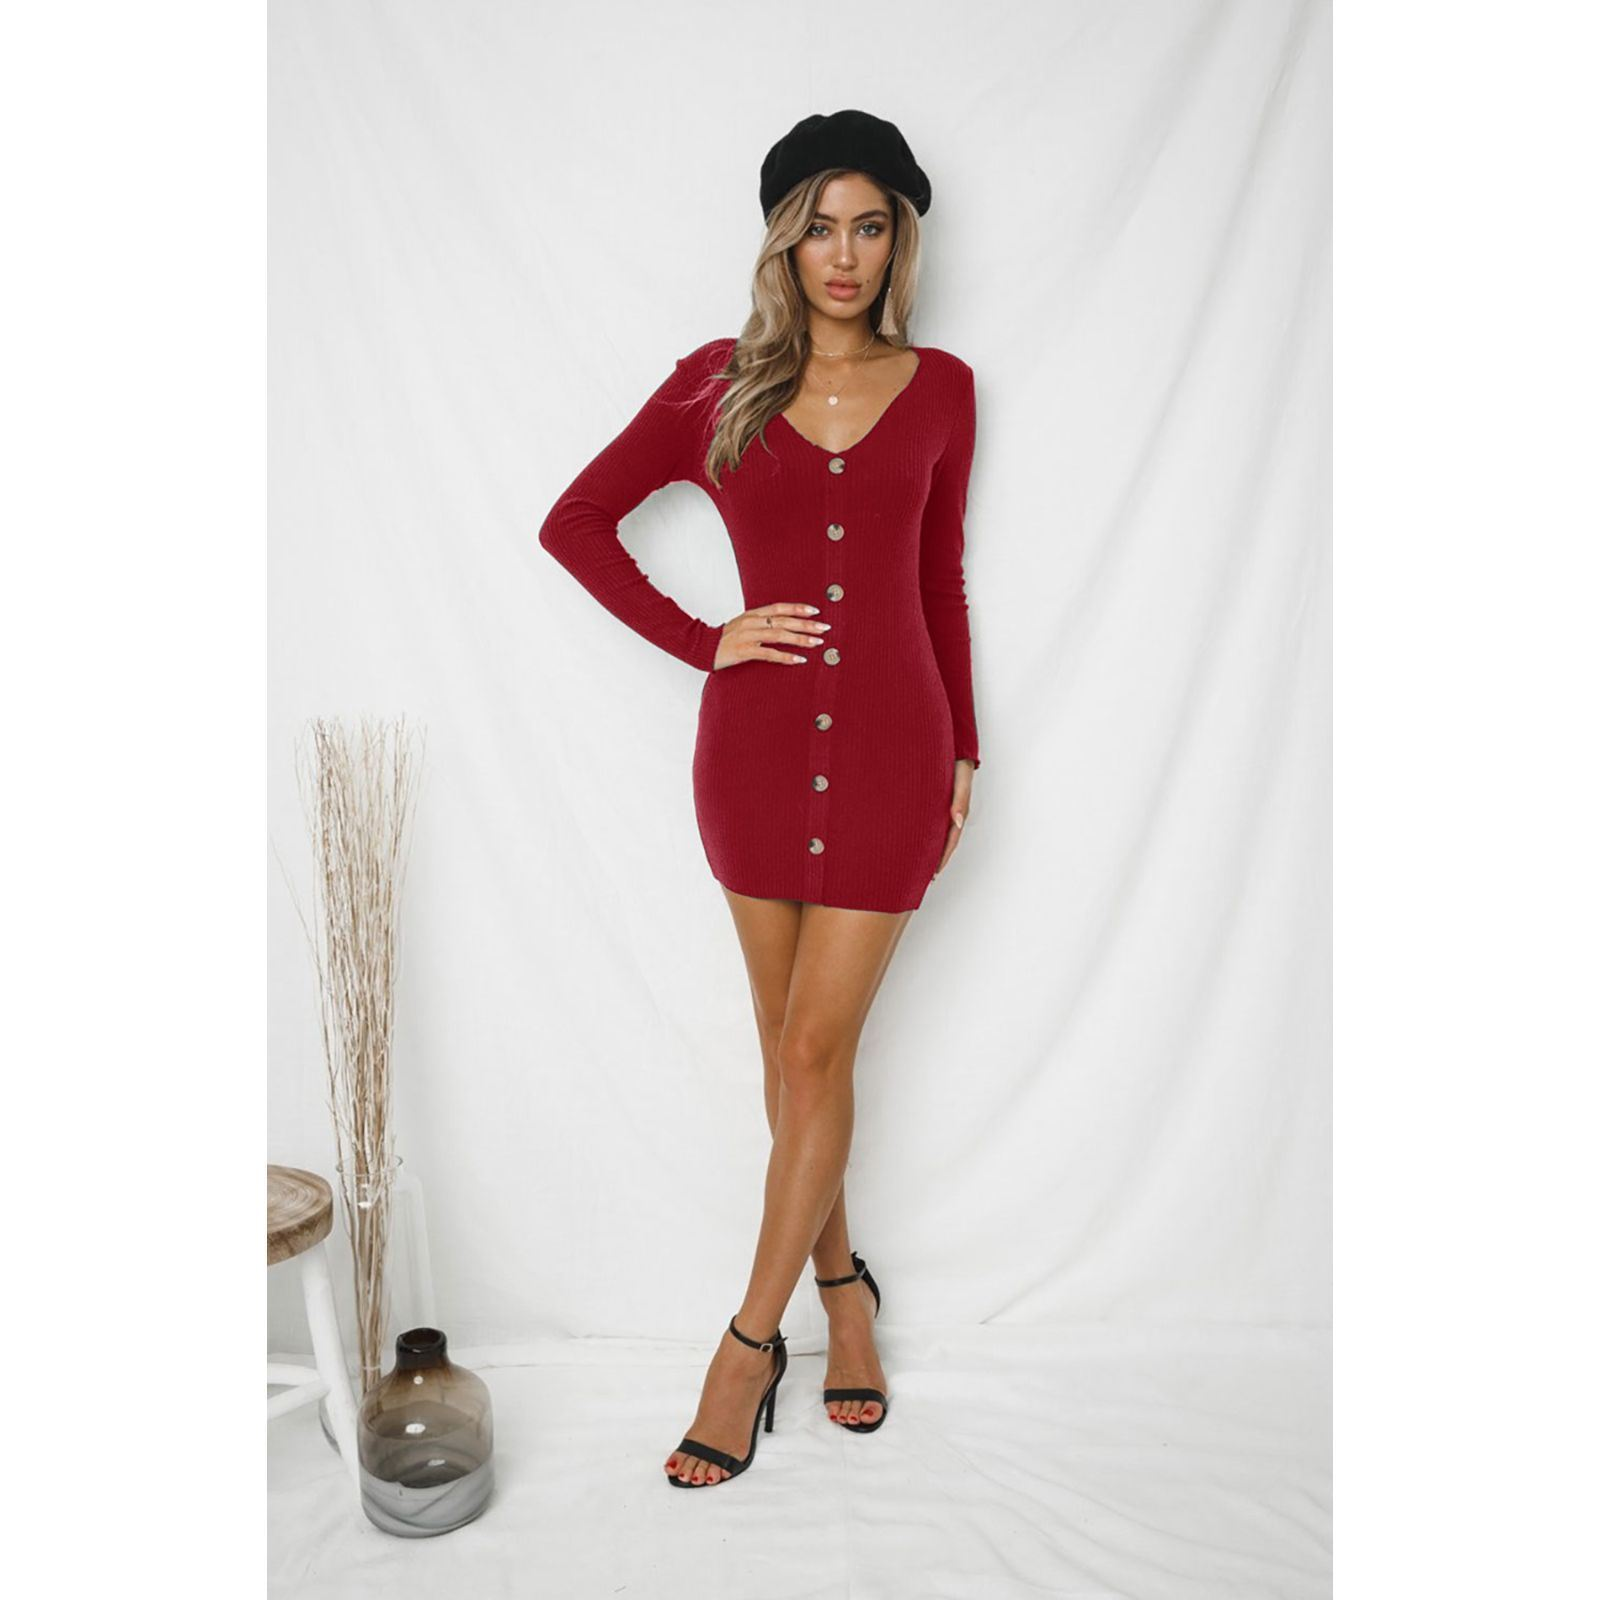 Robe PullRouge Femme Holary PullRouge PullRouge Holary Holary Robe Femme V V Robe Femme PuTiOkXZ